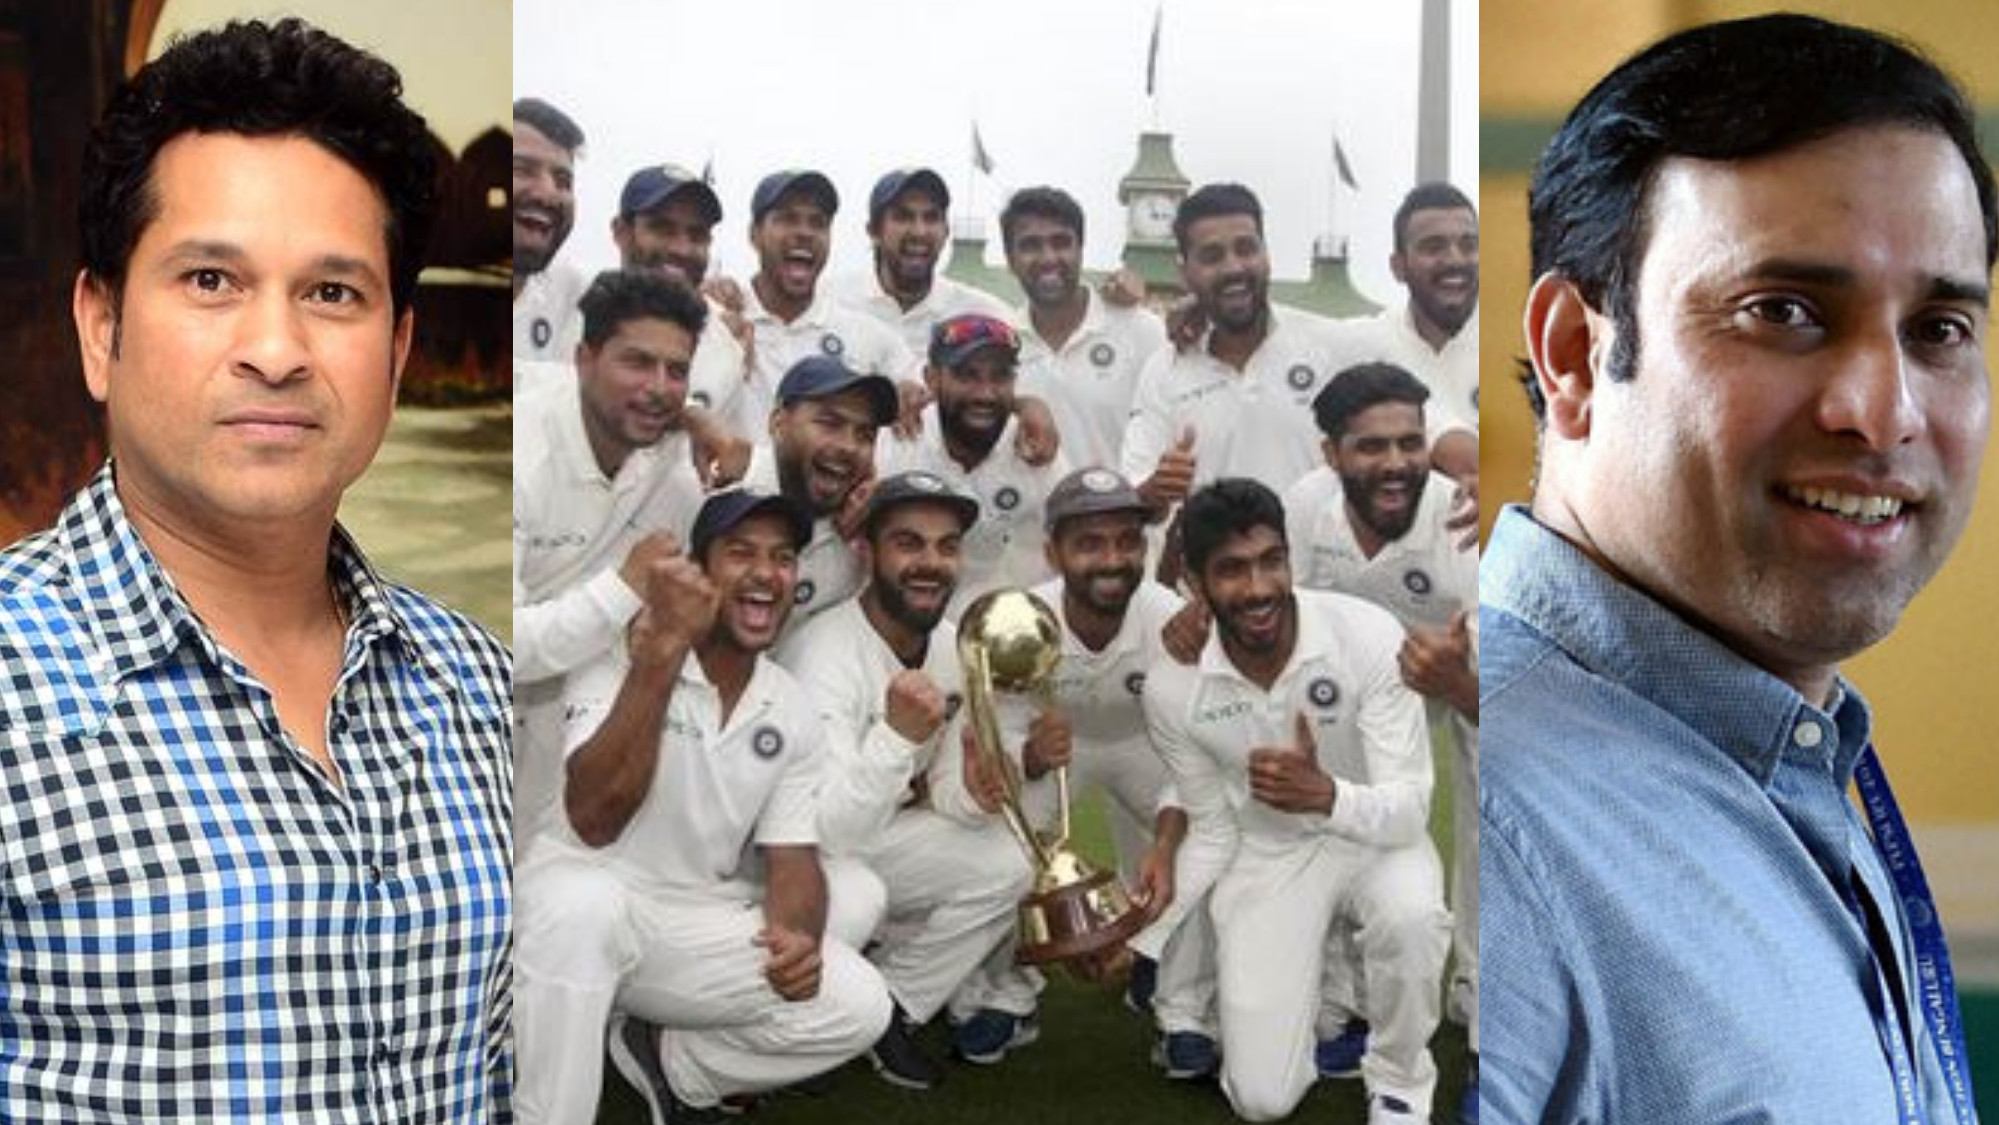 AUS v IND 2018-19: Indian cricket fraternity sends joyous wishes to Team India on historic series win over Australia